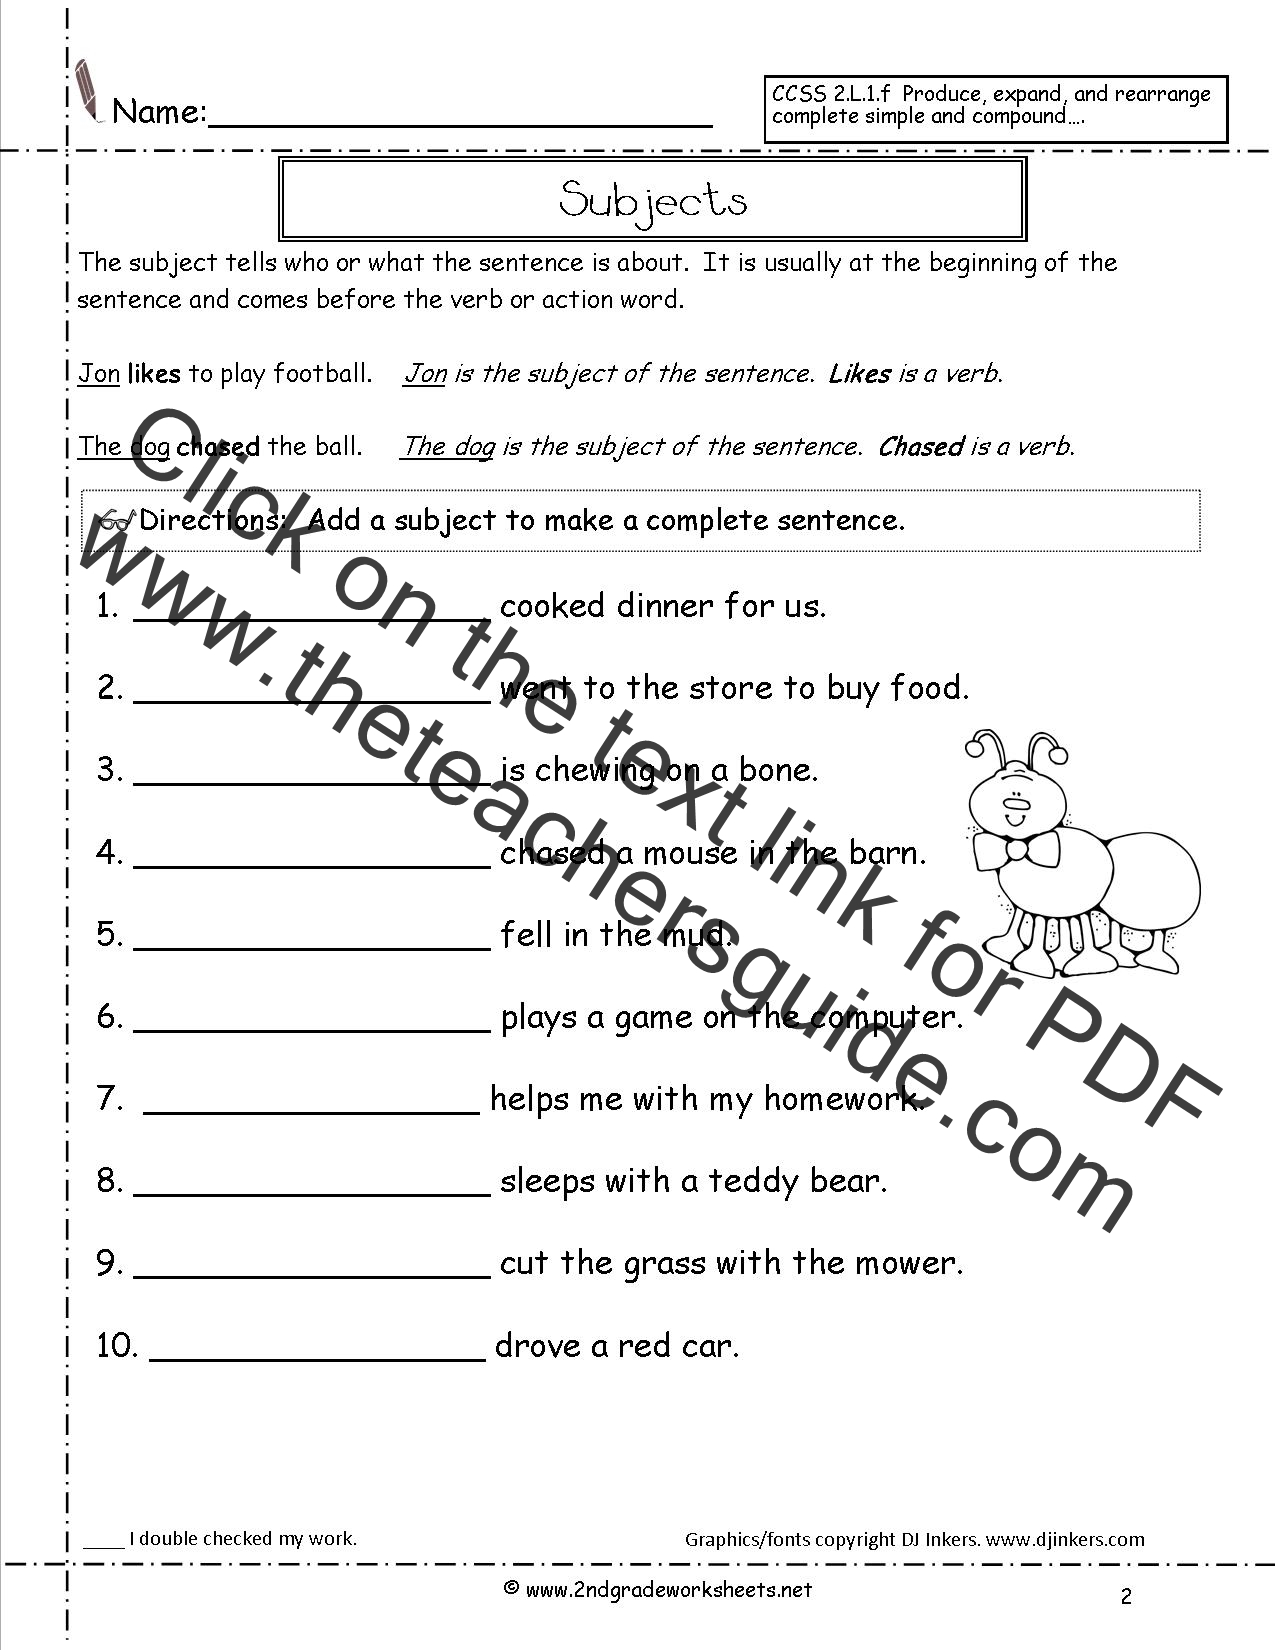 Worksheets Sentence Types Worksheets second grade sentences worksheets ccss 2 l 1 f subjects worksheet sentence subjects